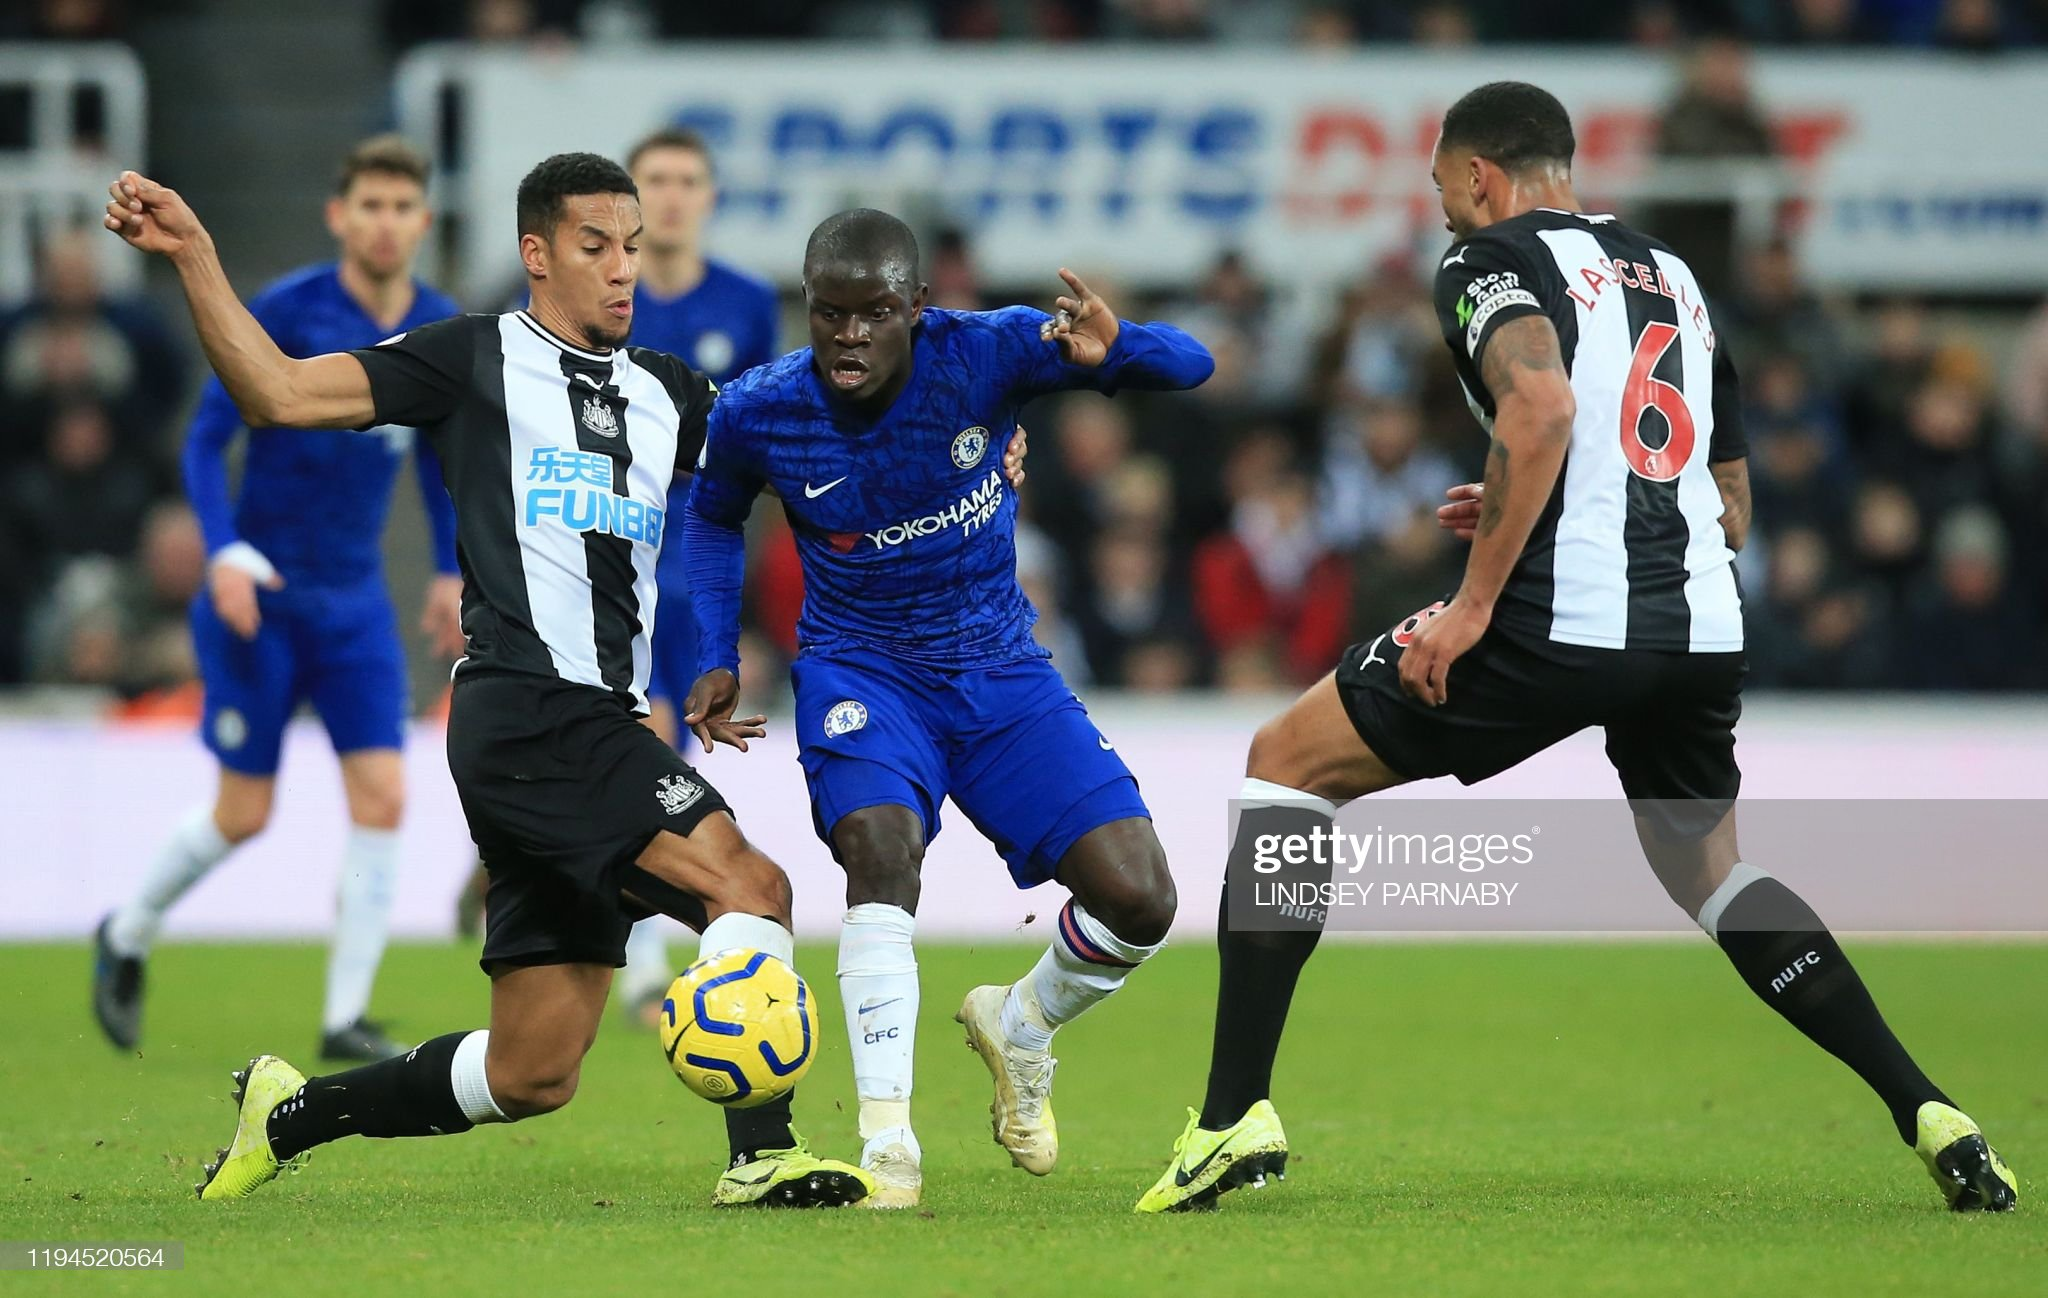 Newcastle vs Chelsea preview, prediction and odds